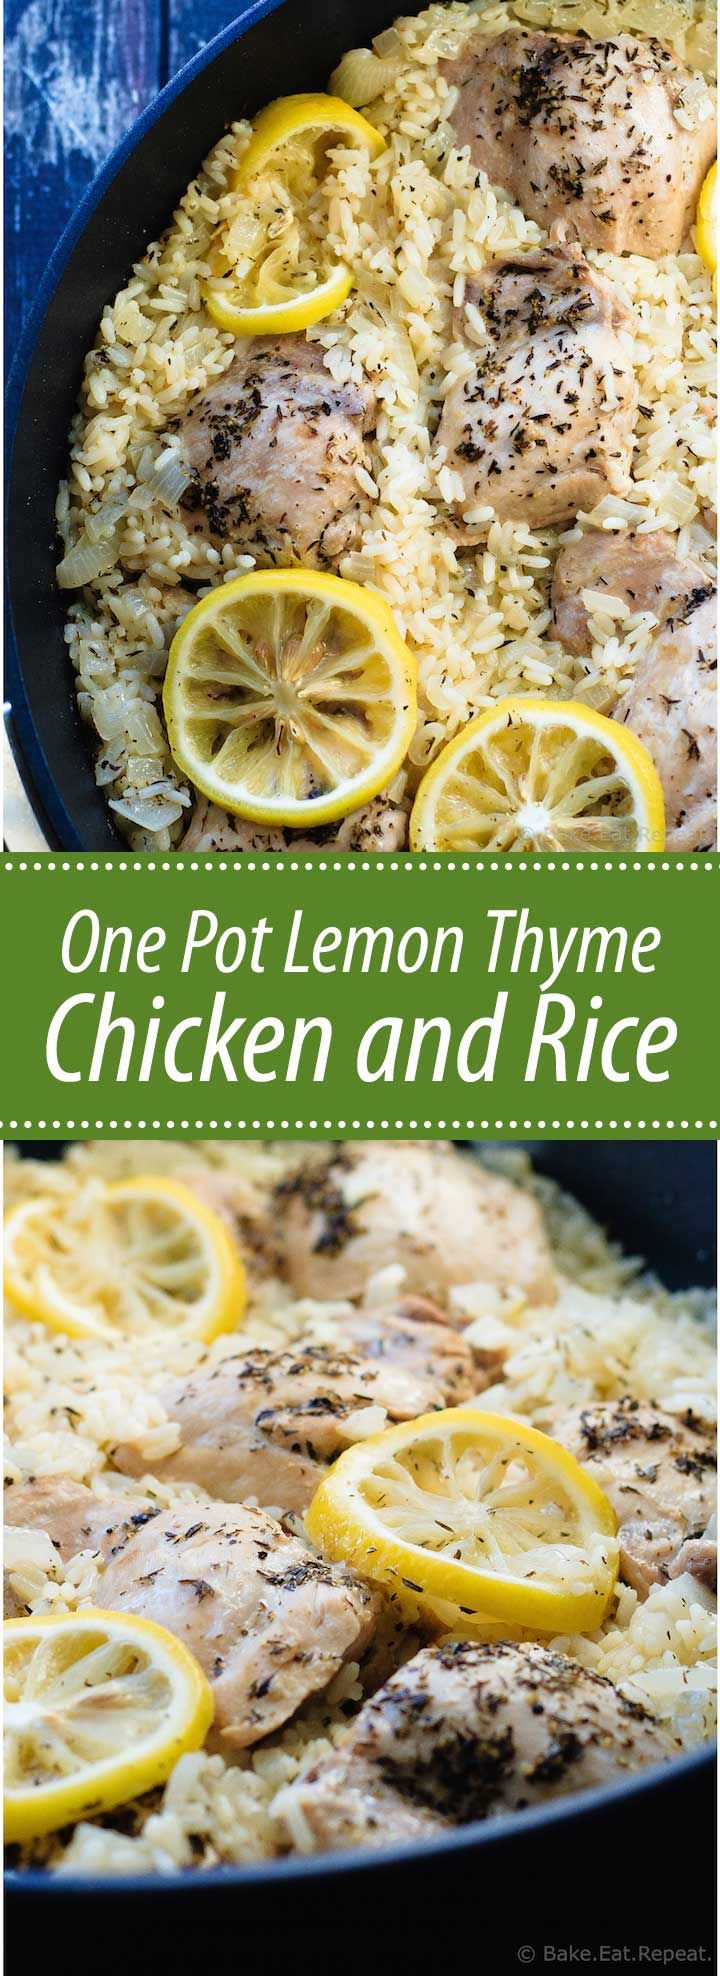 One Pot Lemon Thyme Chicken and Rice - One pot lemon thyme chicken and rice is ready in 30 minutes and filled with flavour. An easy and healthy weeknight meal the whole family will love!                                                                                                                                                     More